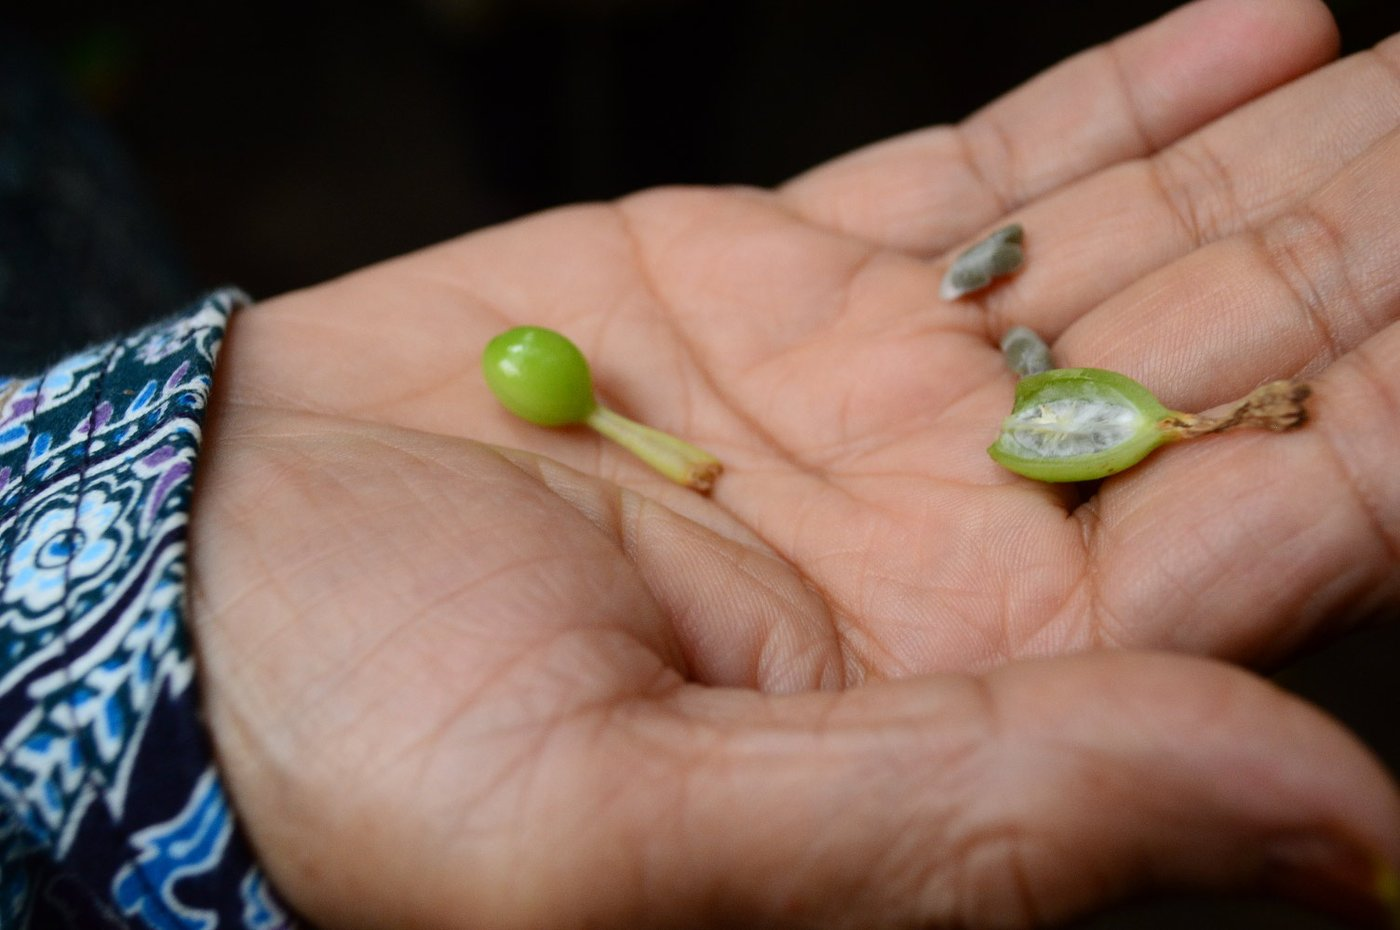 Herb seeds on hand